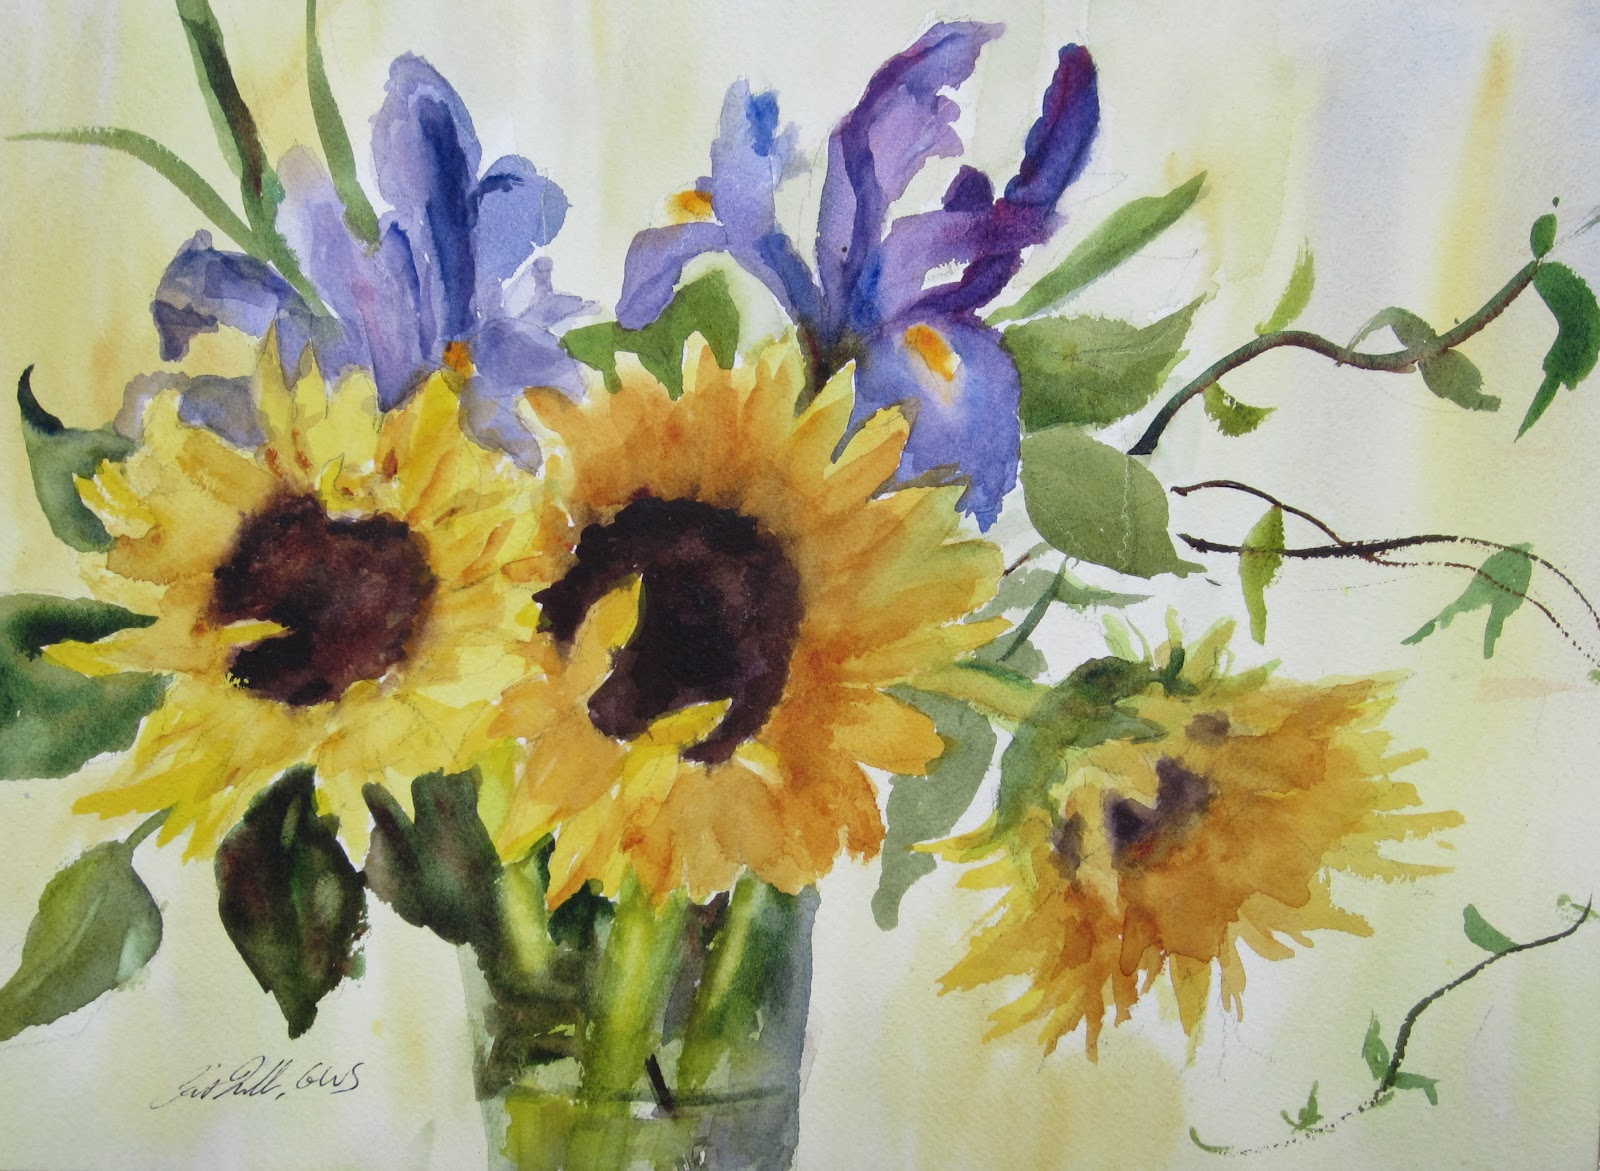 Pat Fiorello Art Elevates Life Painting Flowers in Watercolor Sunflowers